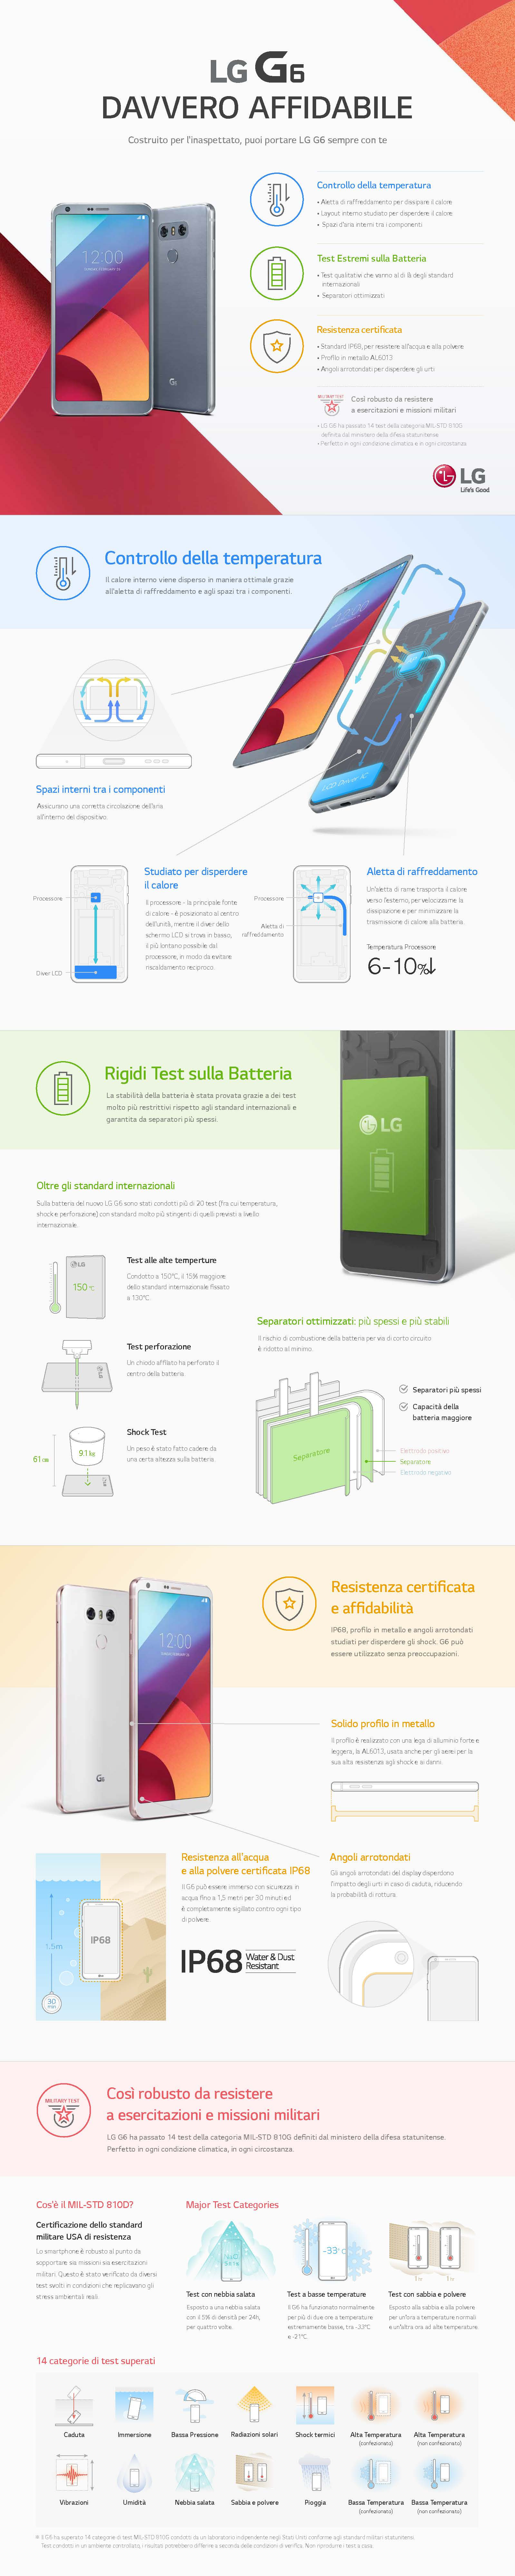 LG_G6_Reliability_Infographic